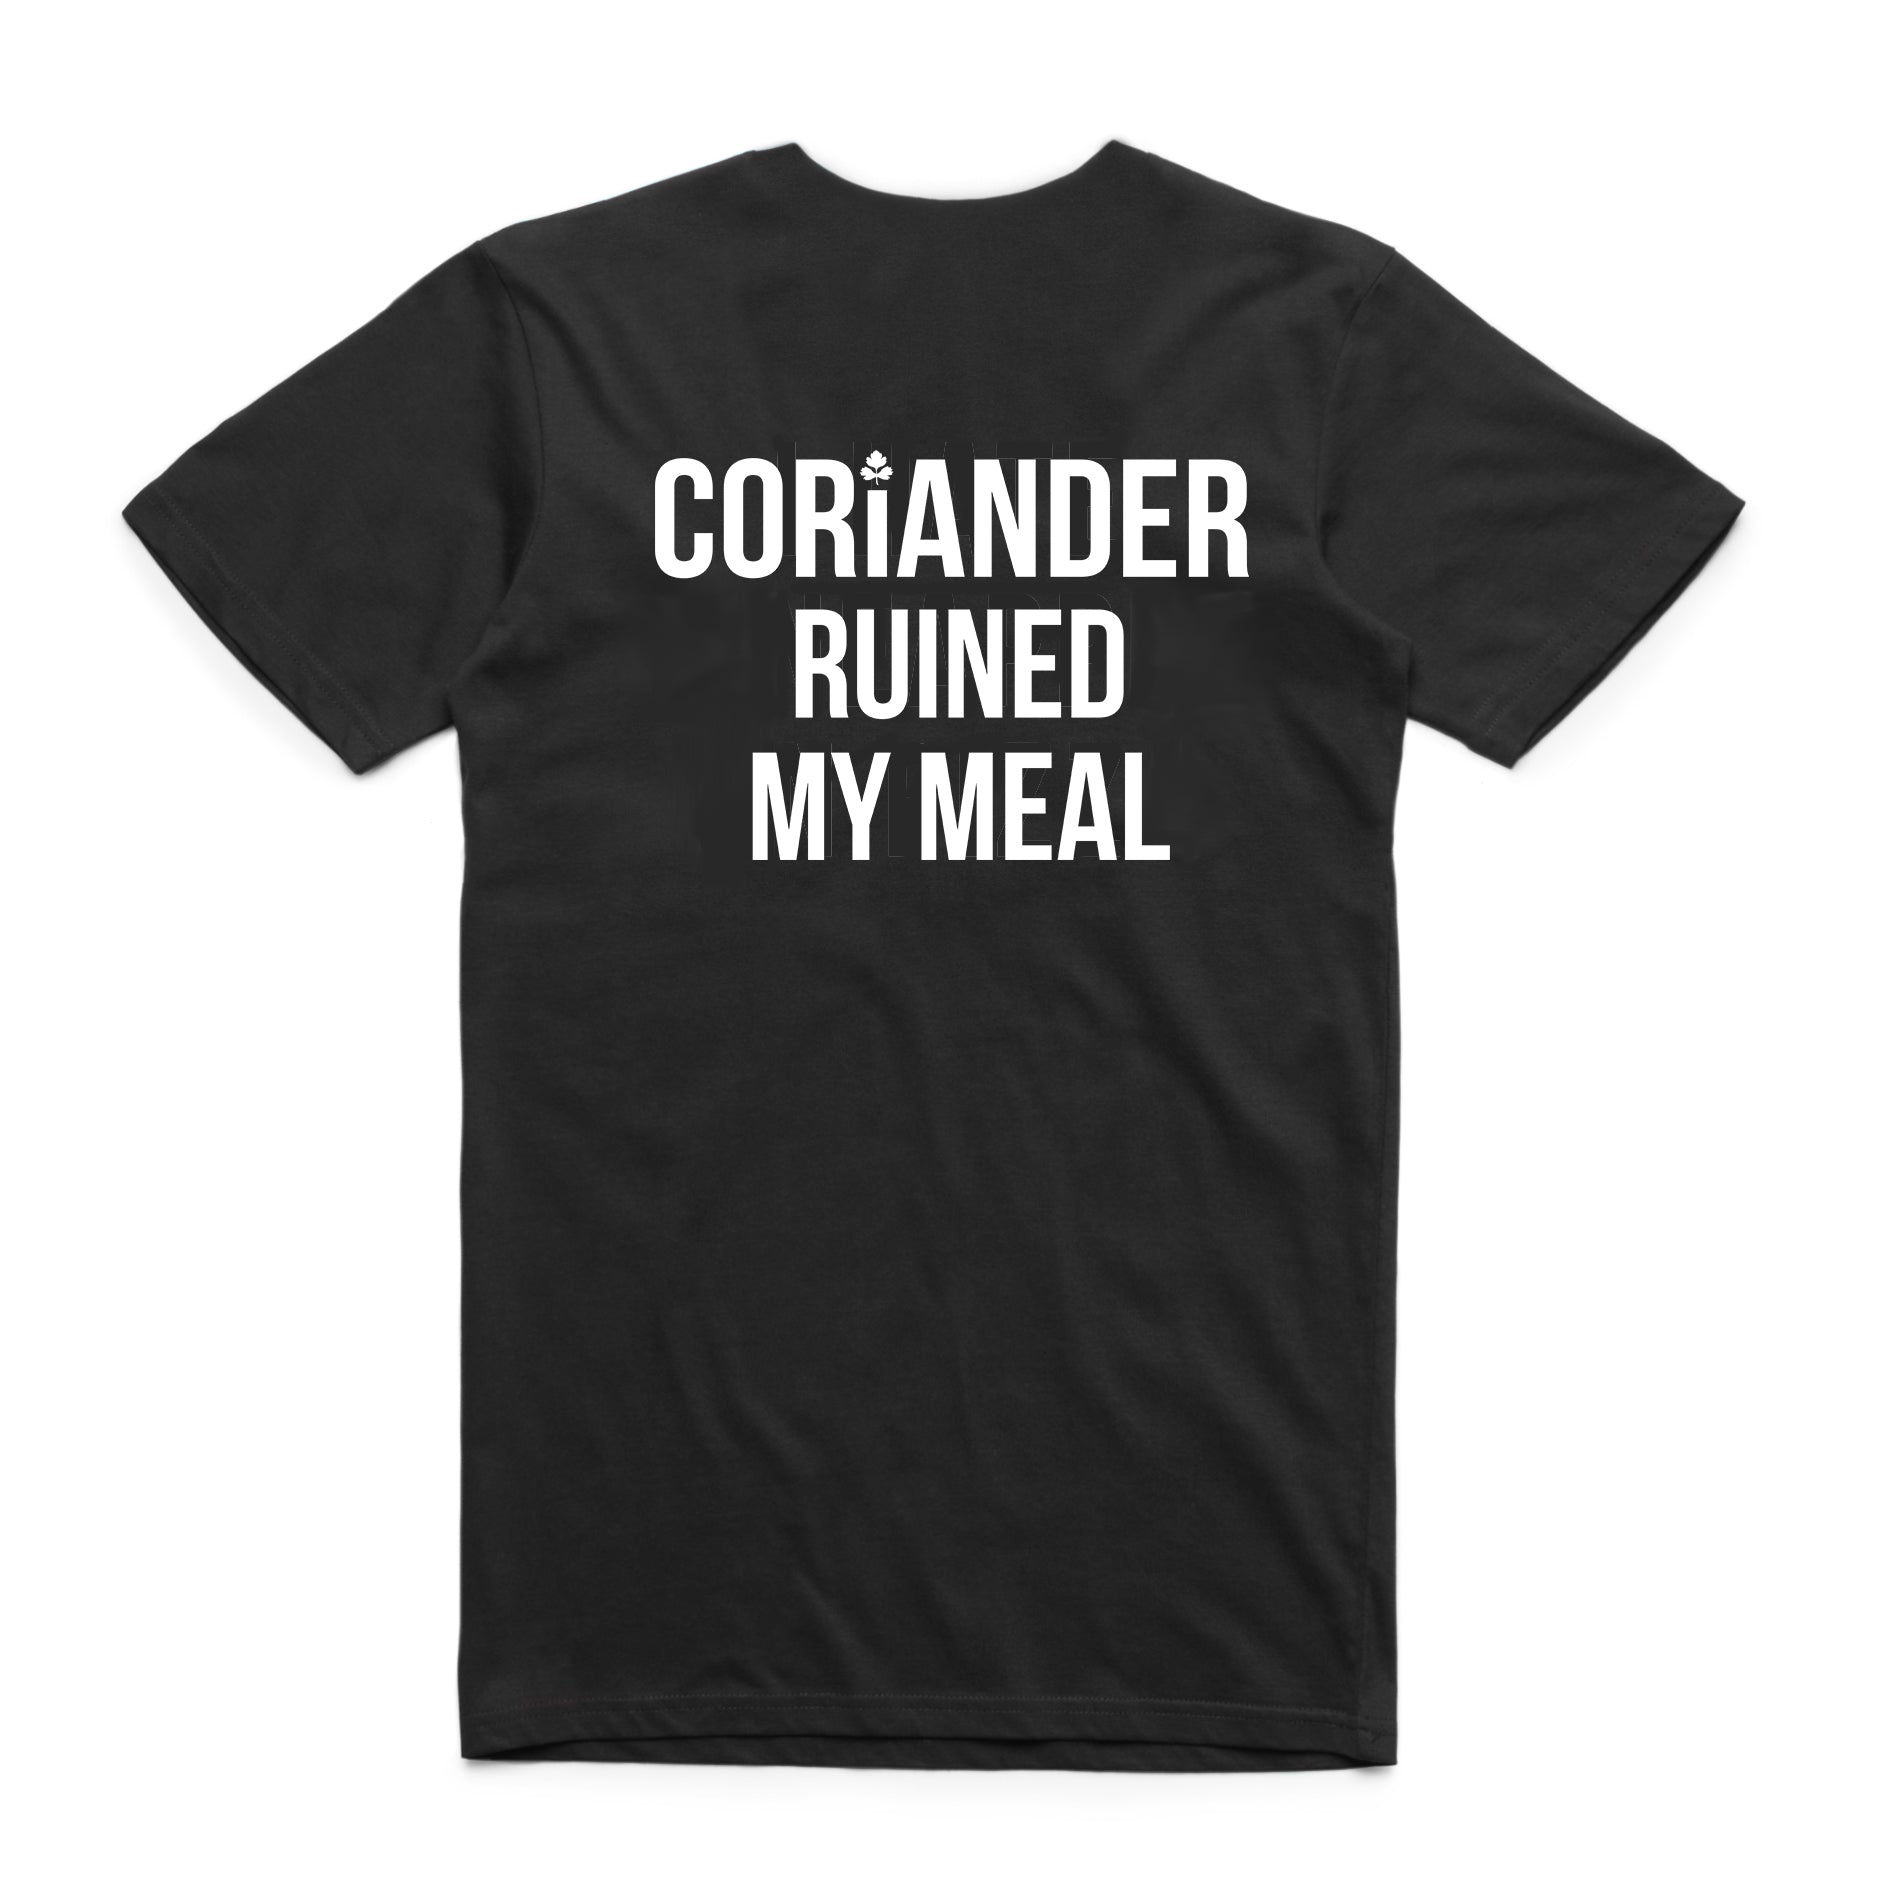 Coriander Ruined My Meal Tee